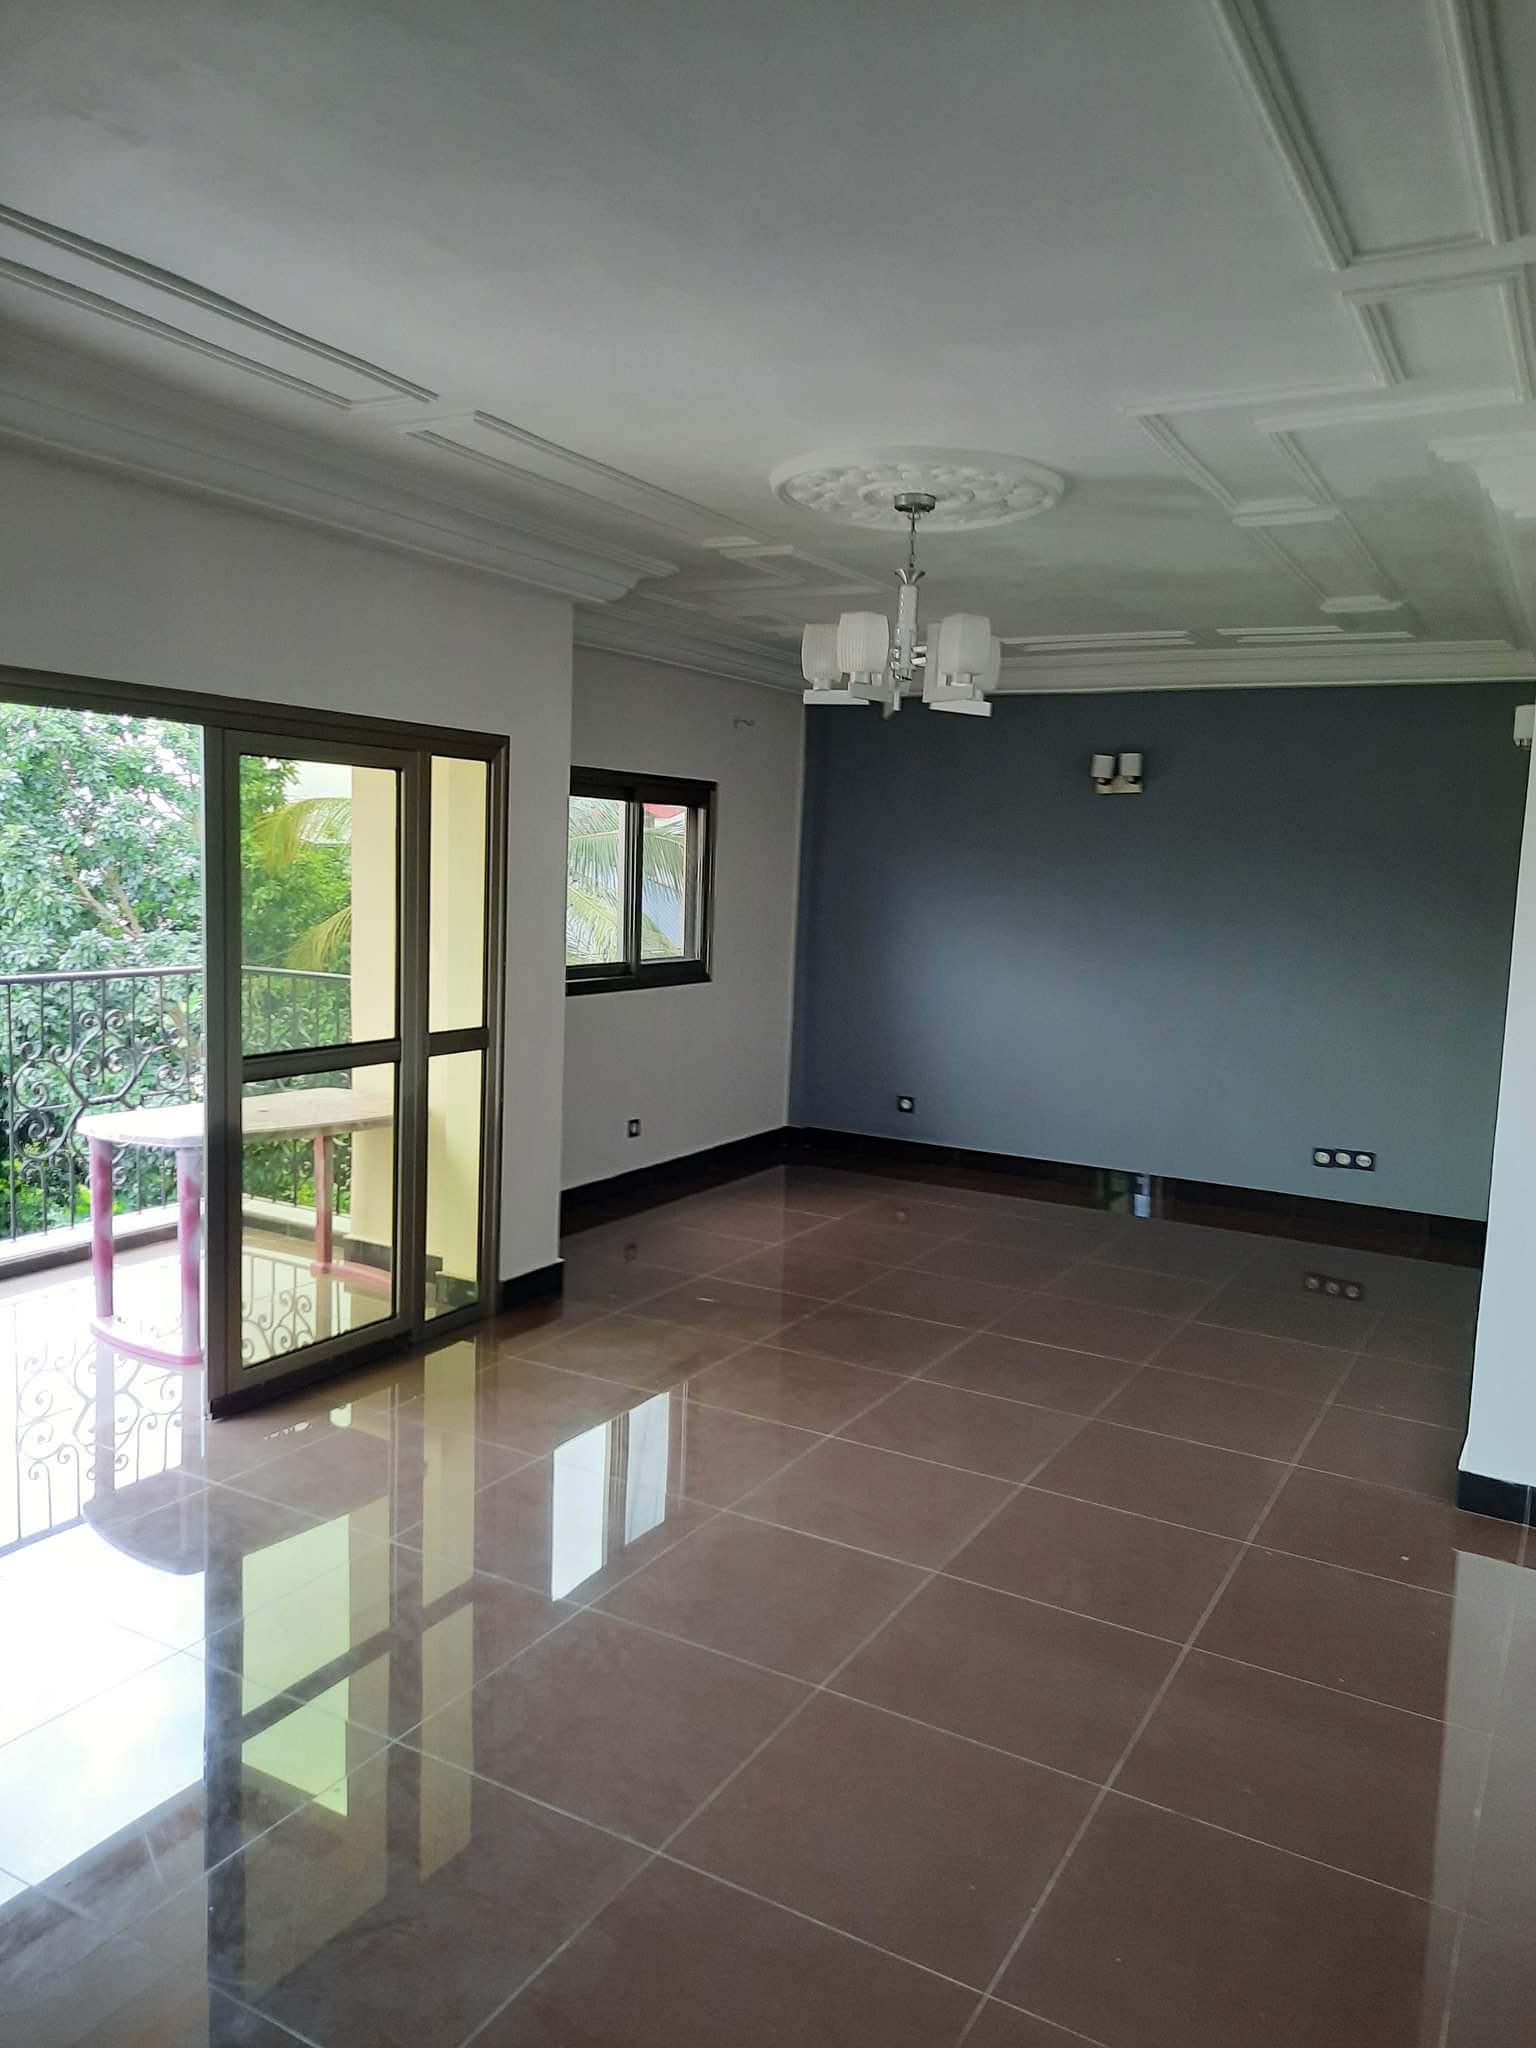 Apartment to rent - Douala, Logpom, Ver bassong - 1 living room(s), 2 bedroom(s), 3 bathroom(s) - 210 000 FCFA / month